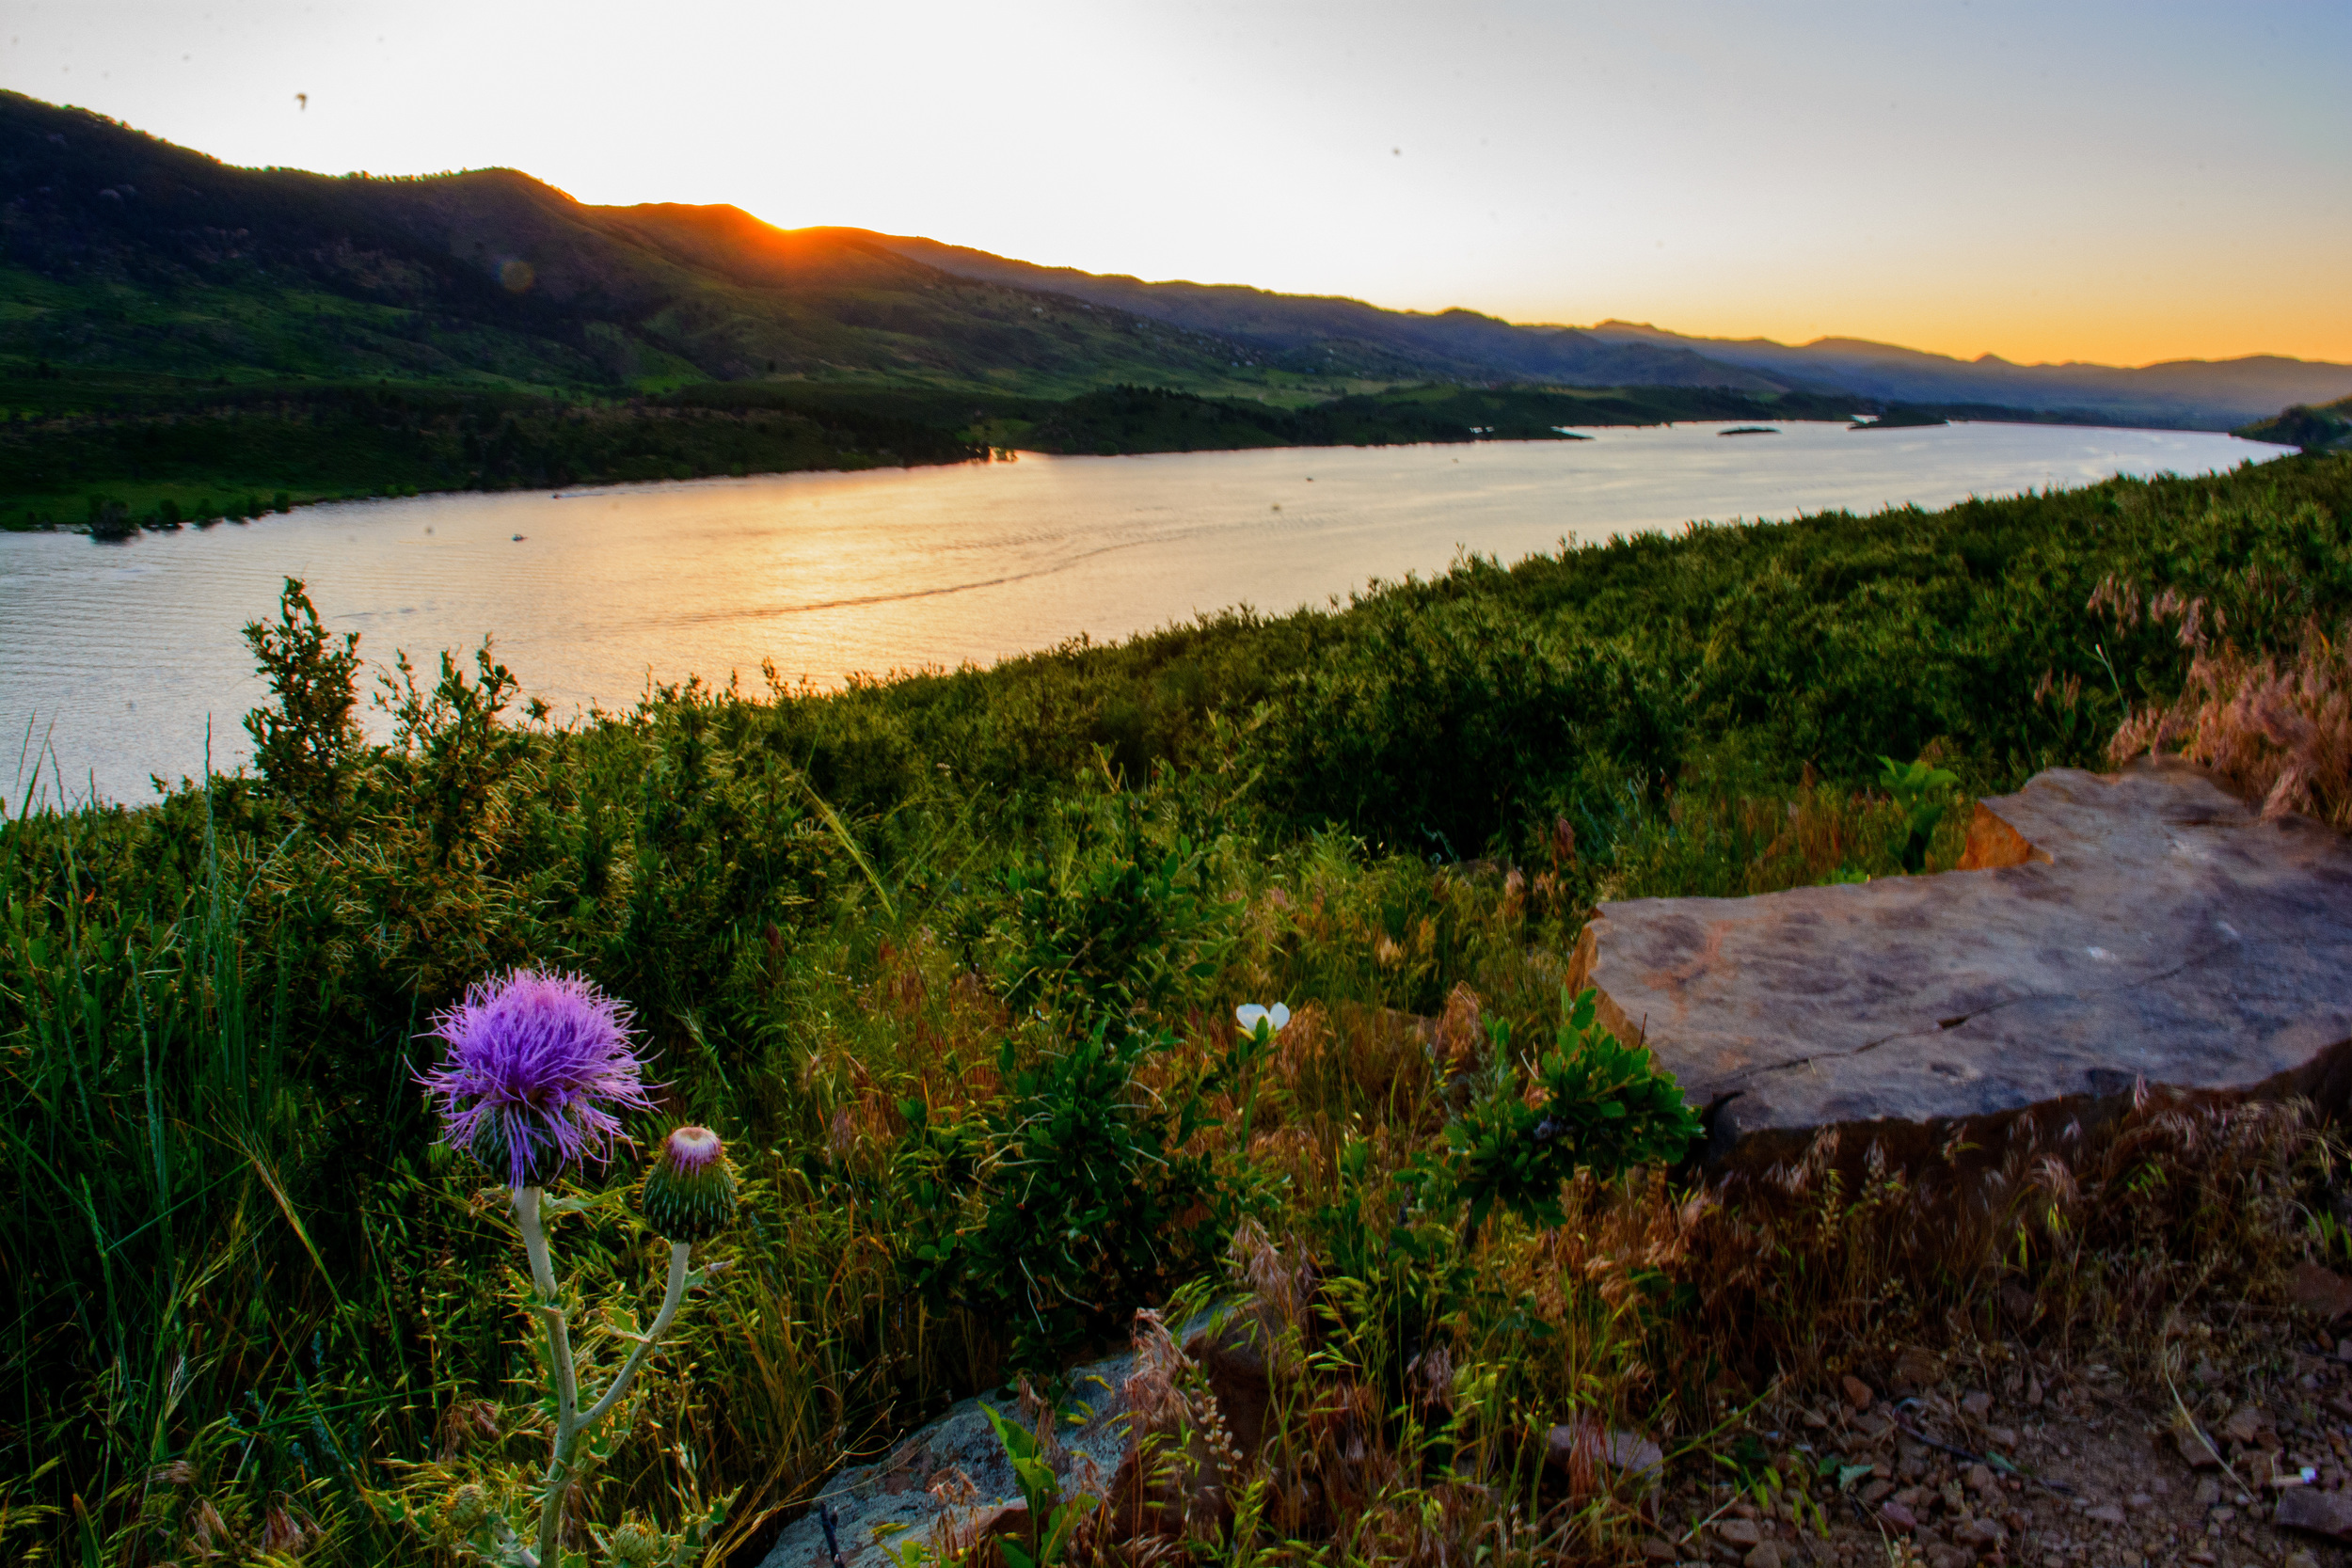 6-14 Photo: Overlooking Horsetooth Reservoir, Fort Collins CO